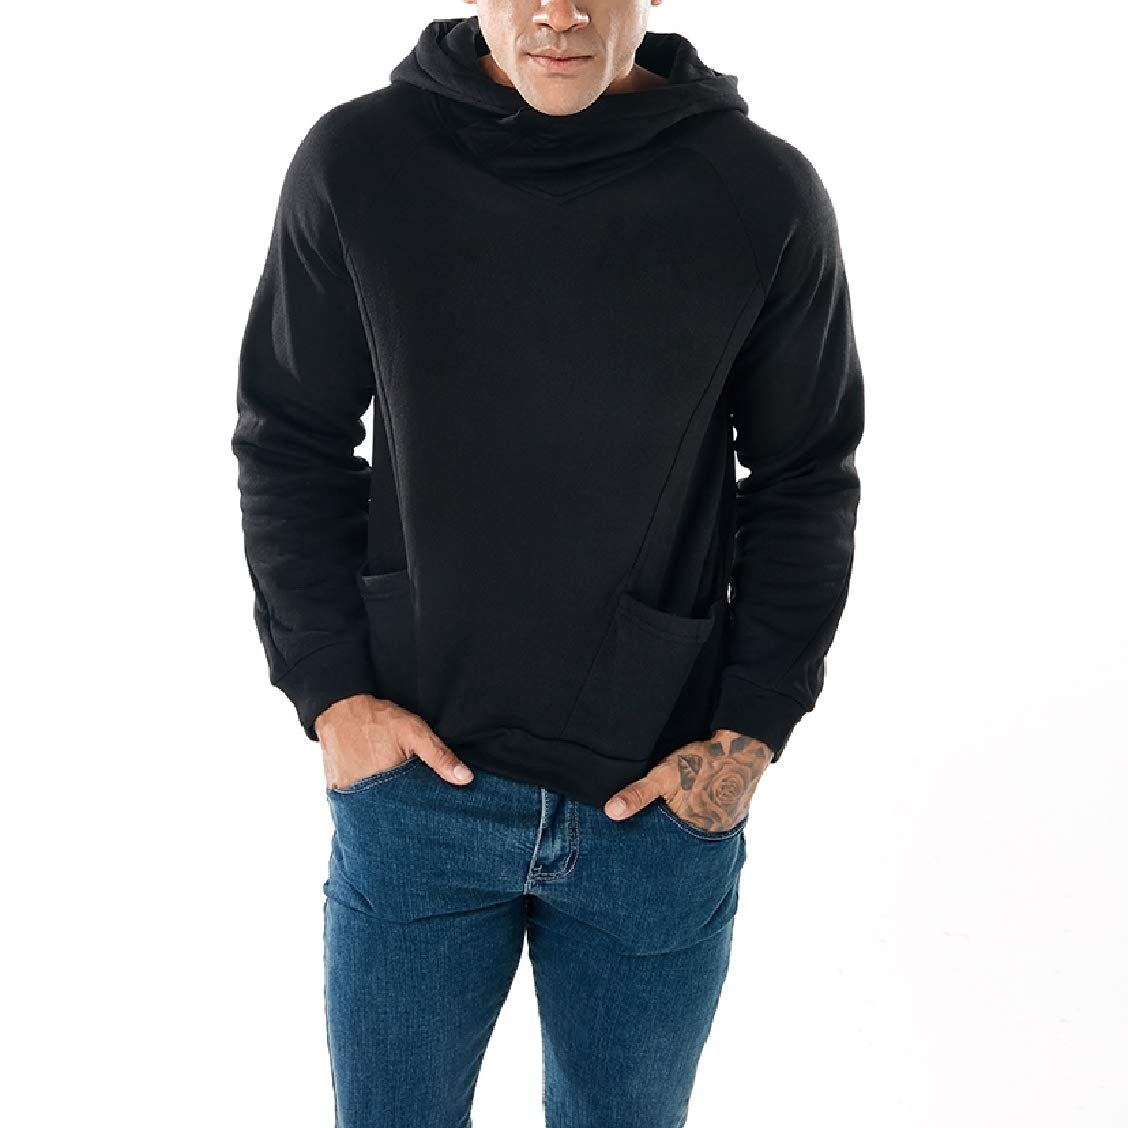 Fieer Mens Sports Solid Hooded Turtleneck Pullover Sweatshirt